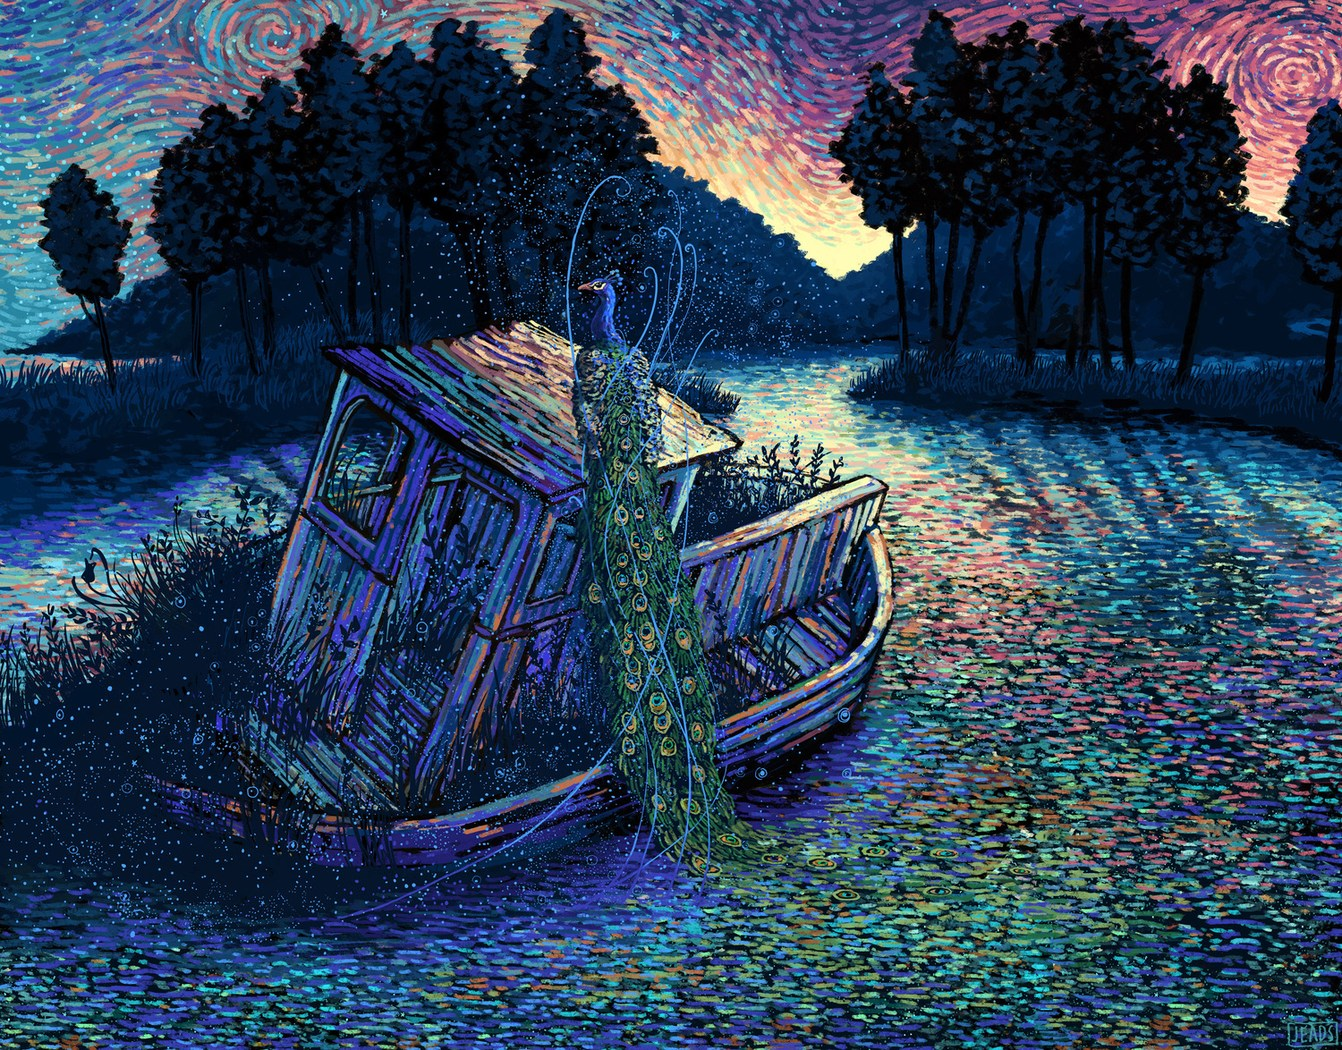 Fantastical Worlds Created with Dappled Brush Strokes by Illustrator James R. Eads | Colossal